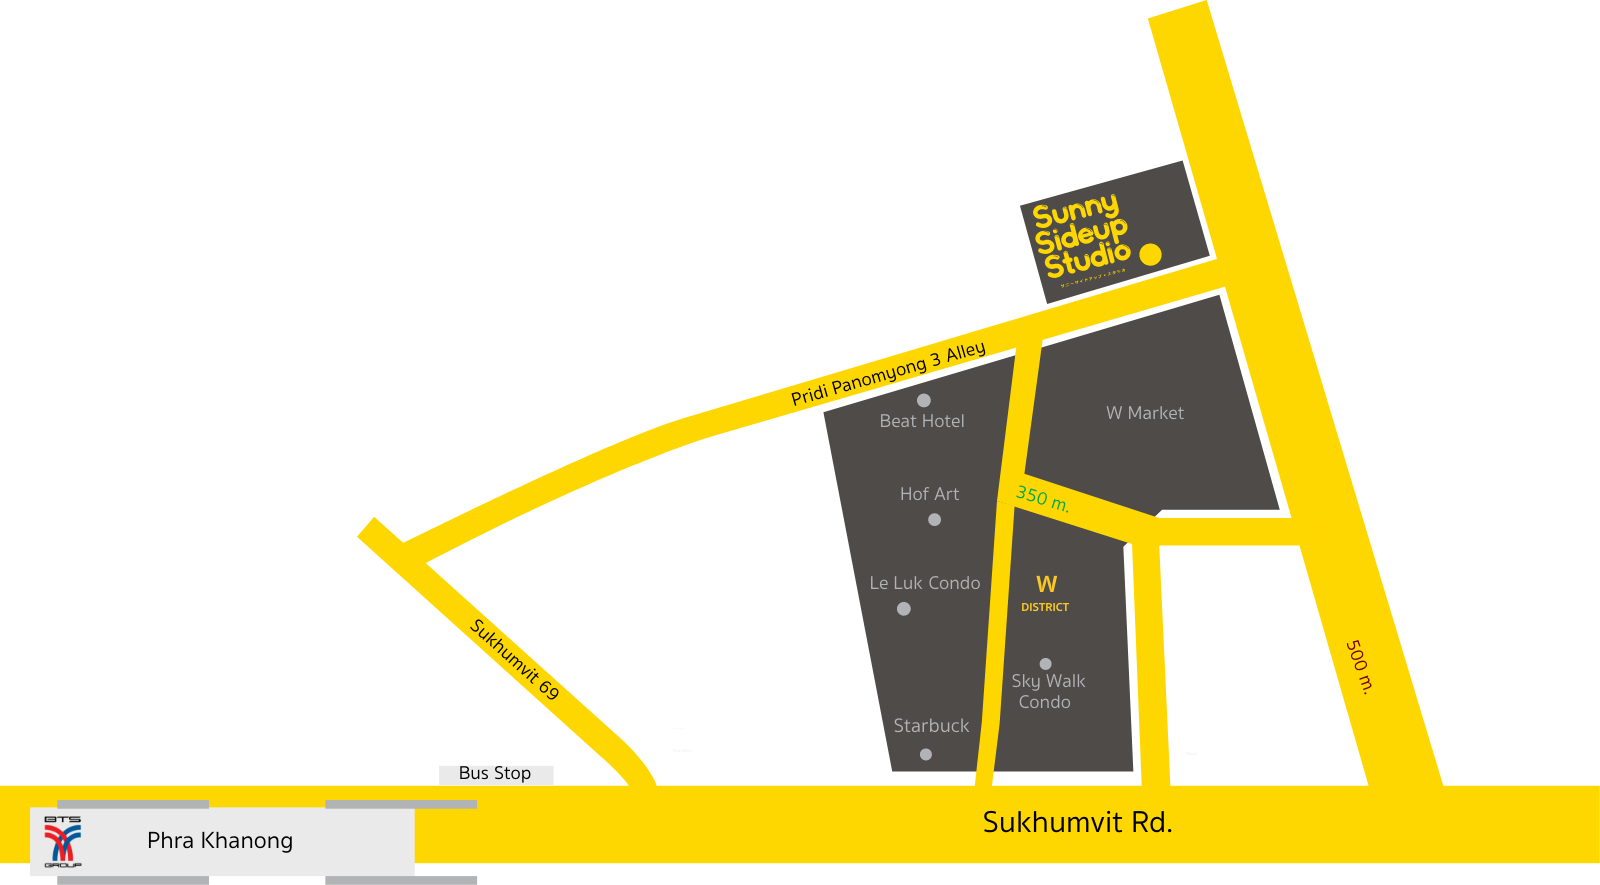 Sunnysideup Studio map